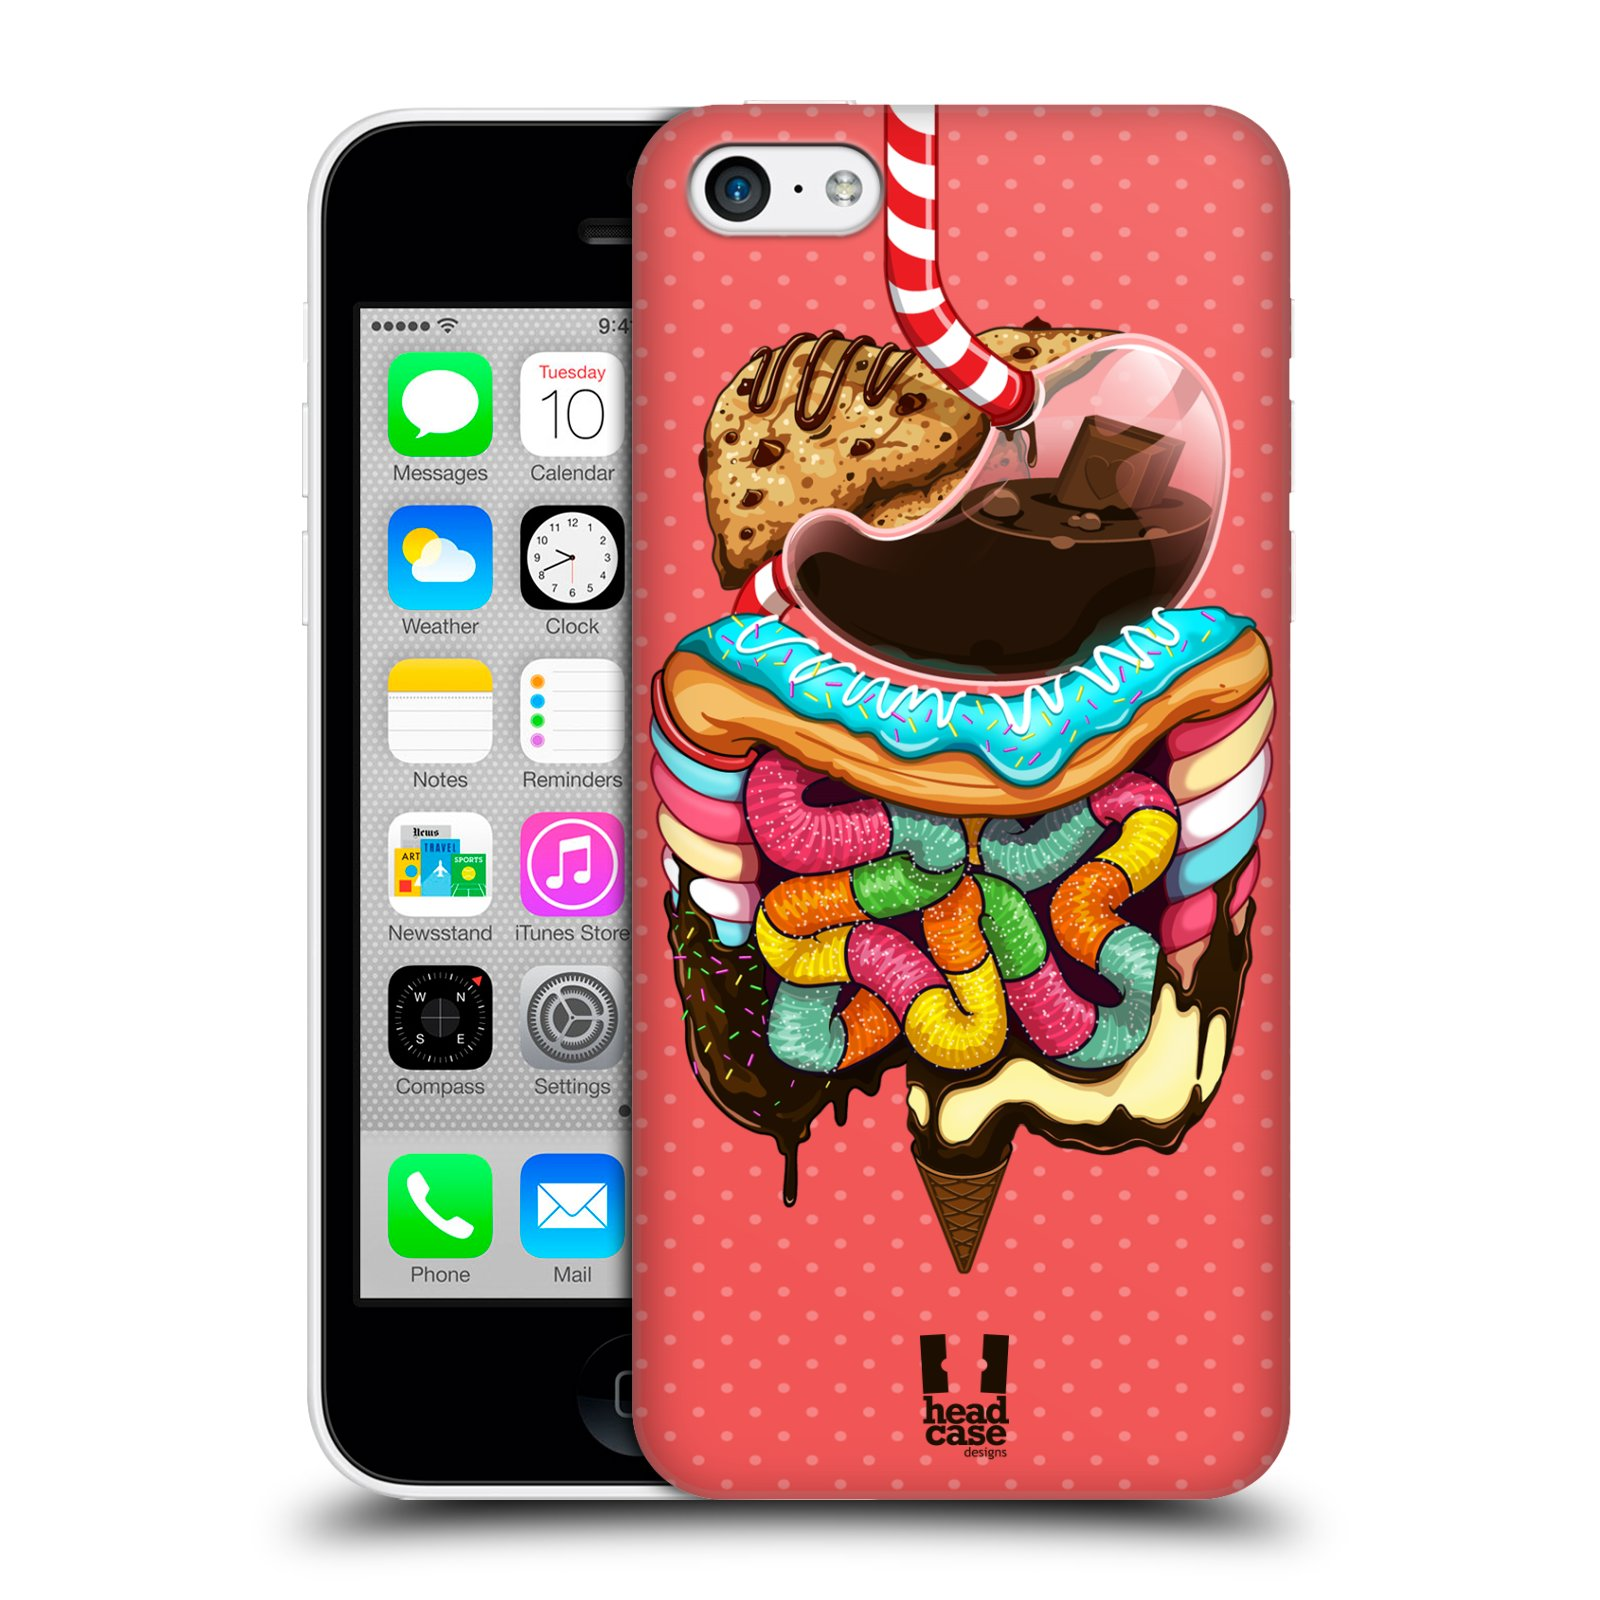 HEAD CASE DESIGNS HUMAN ANATOMY CASE COVER FOR APPLE iPHONE 5C | eBay